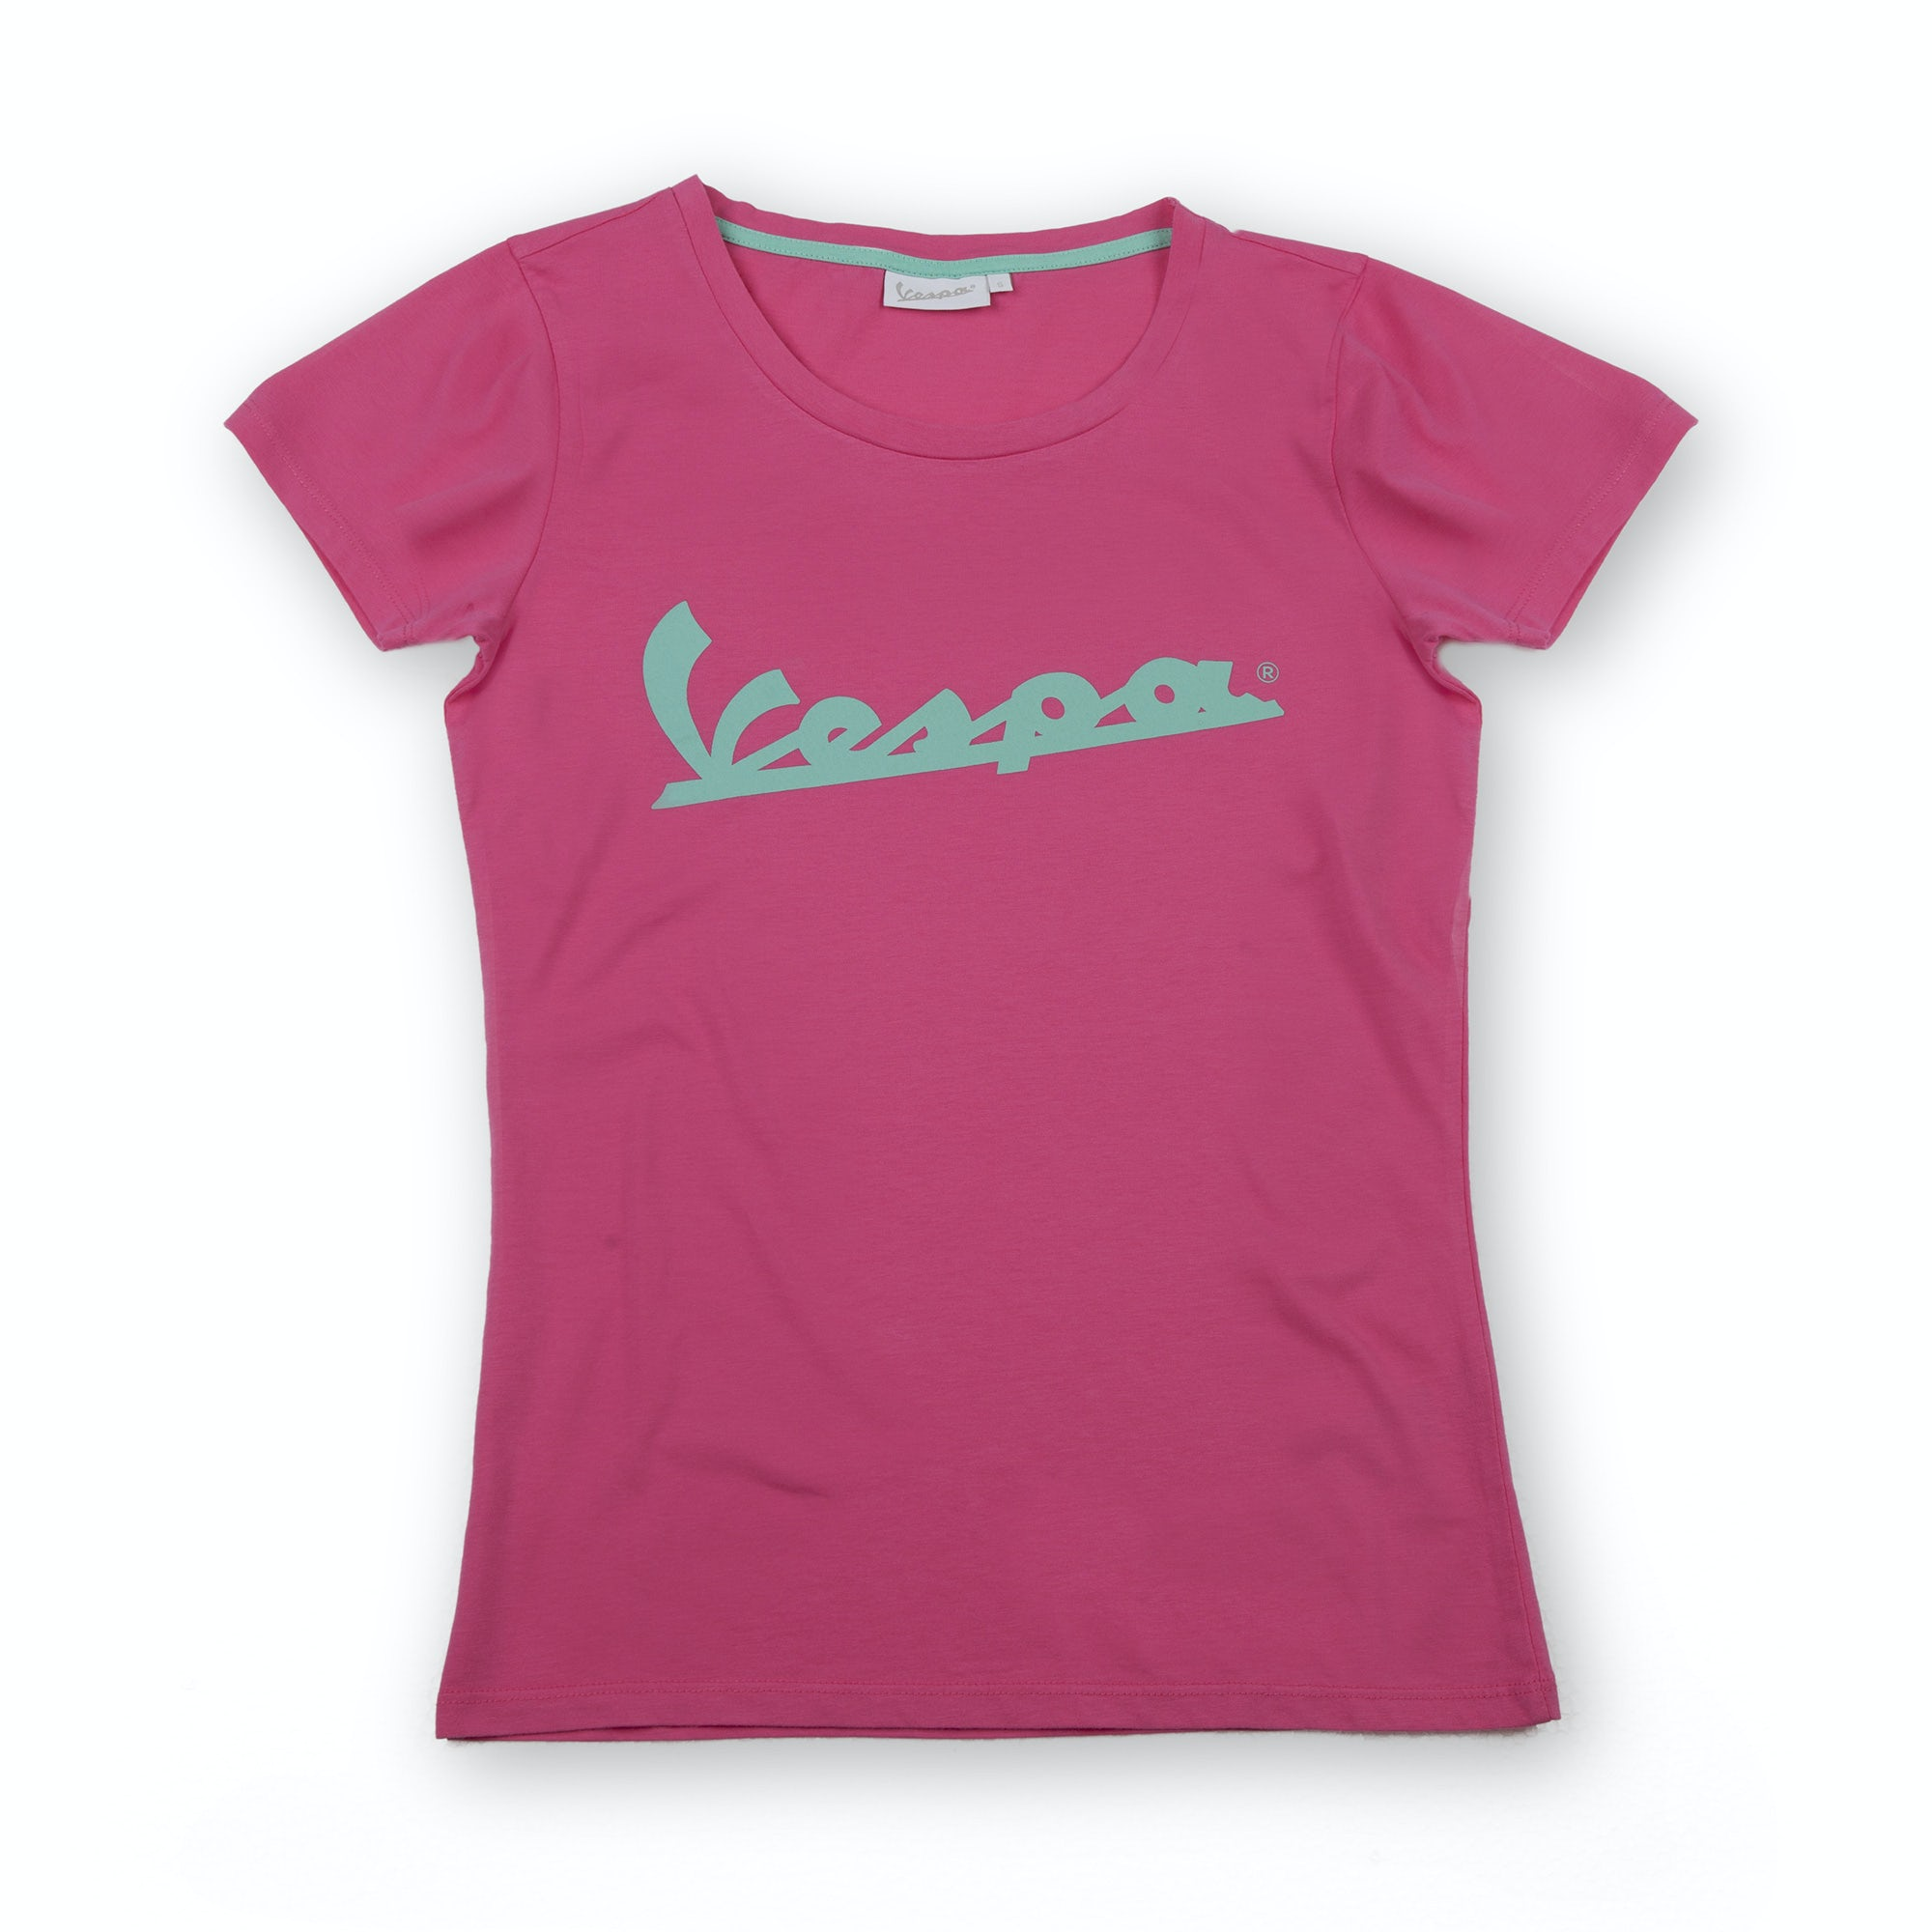 t shirt donna vespa colors t shirts abbigliamento. Black Bedroom Furniture Sets. Home Design Ideas